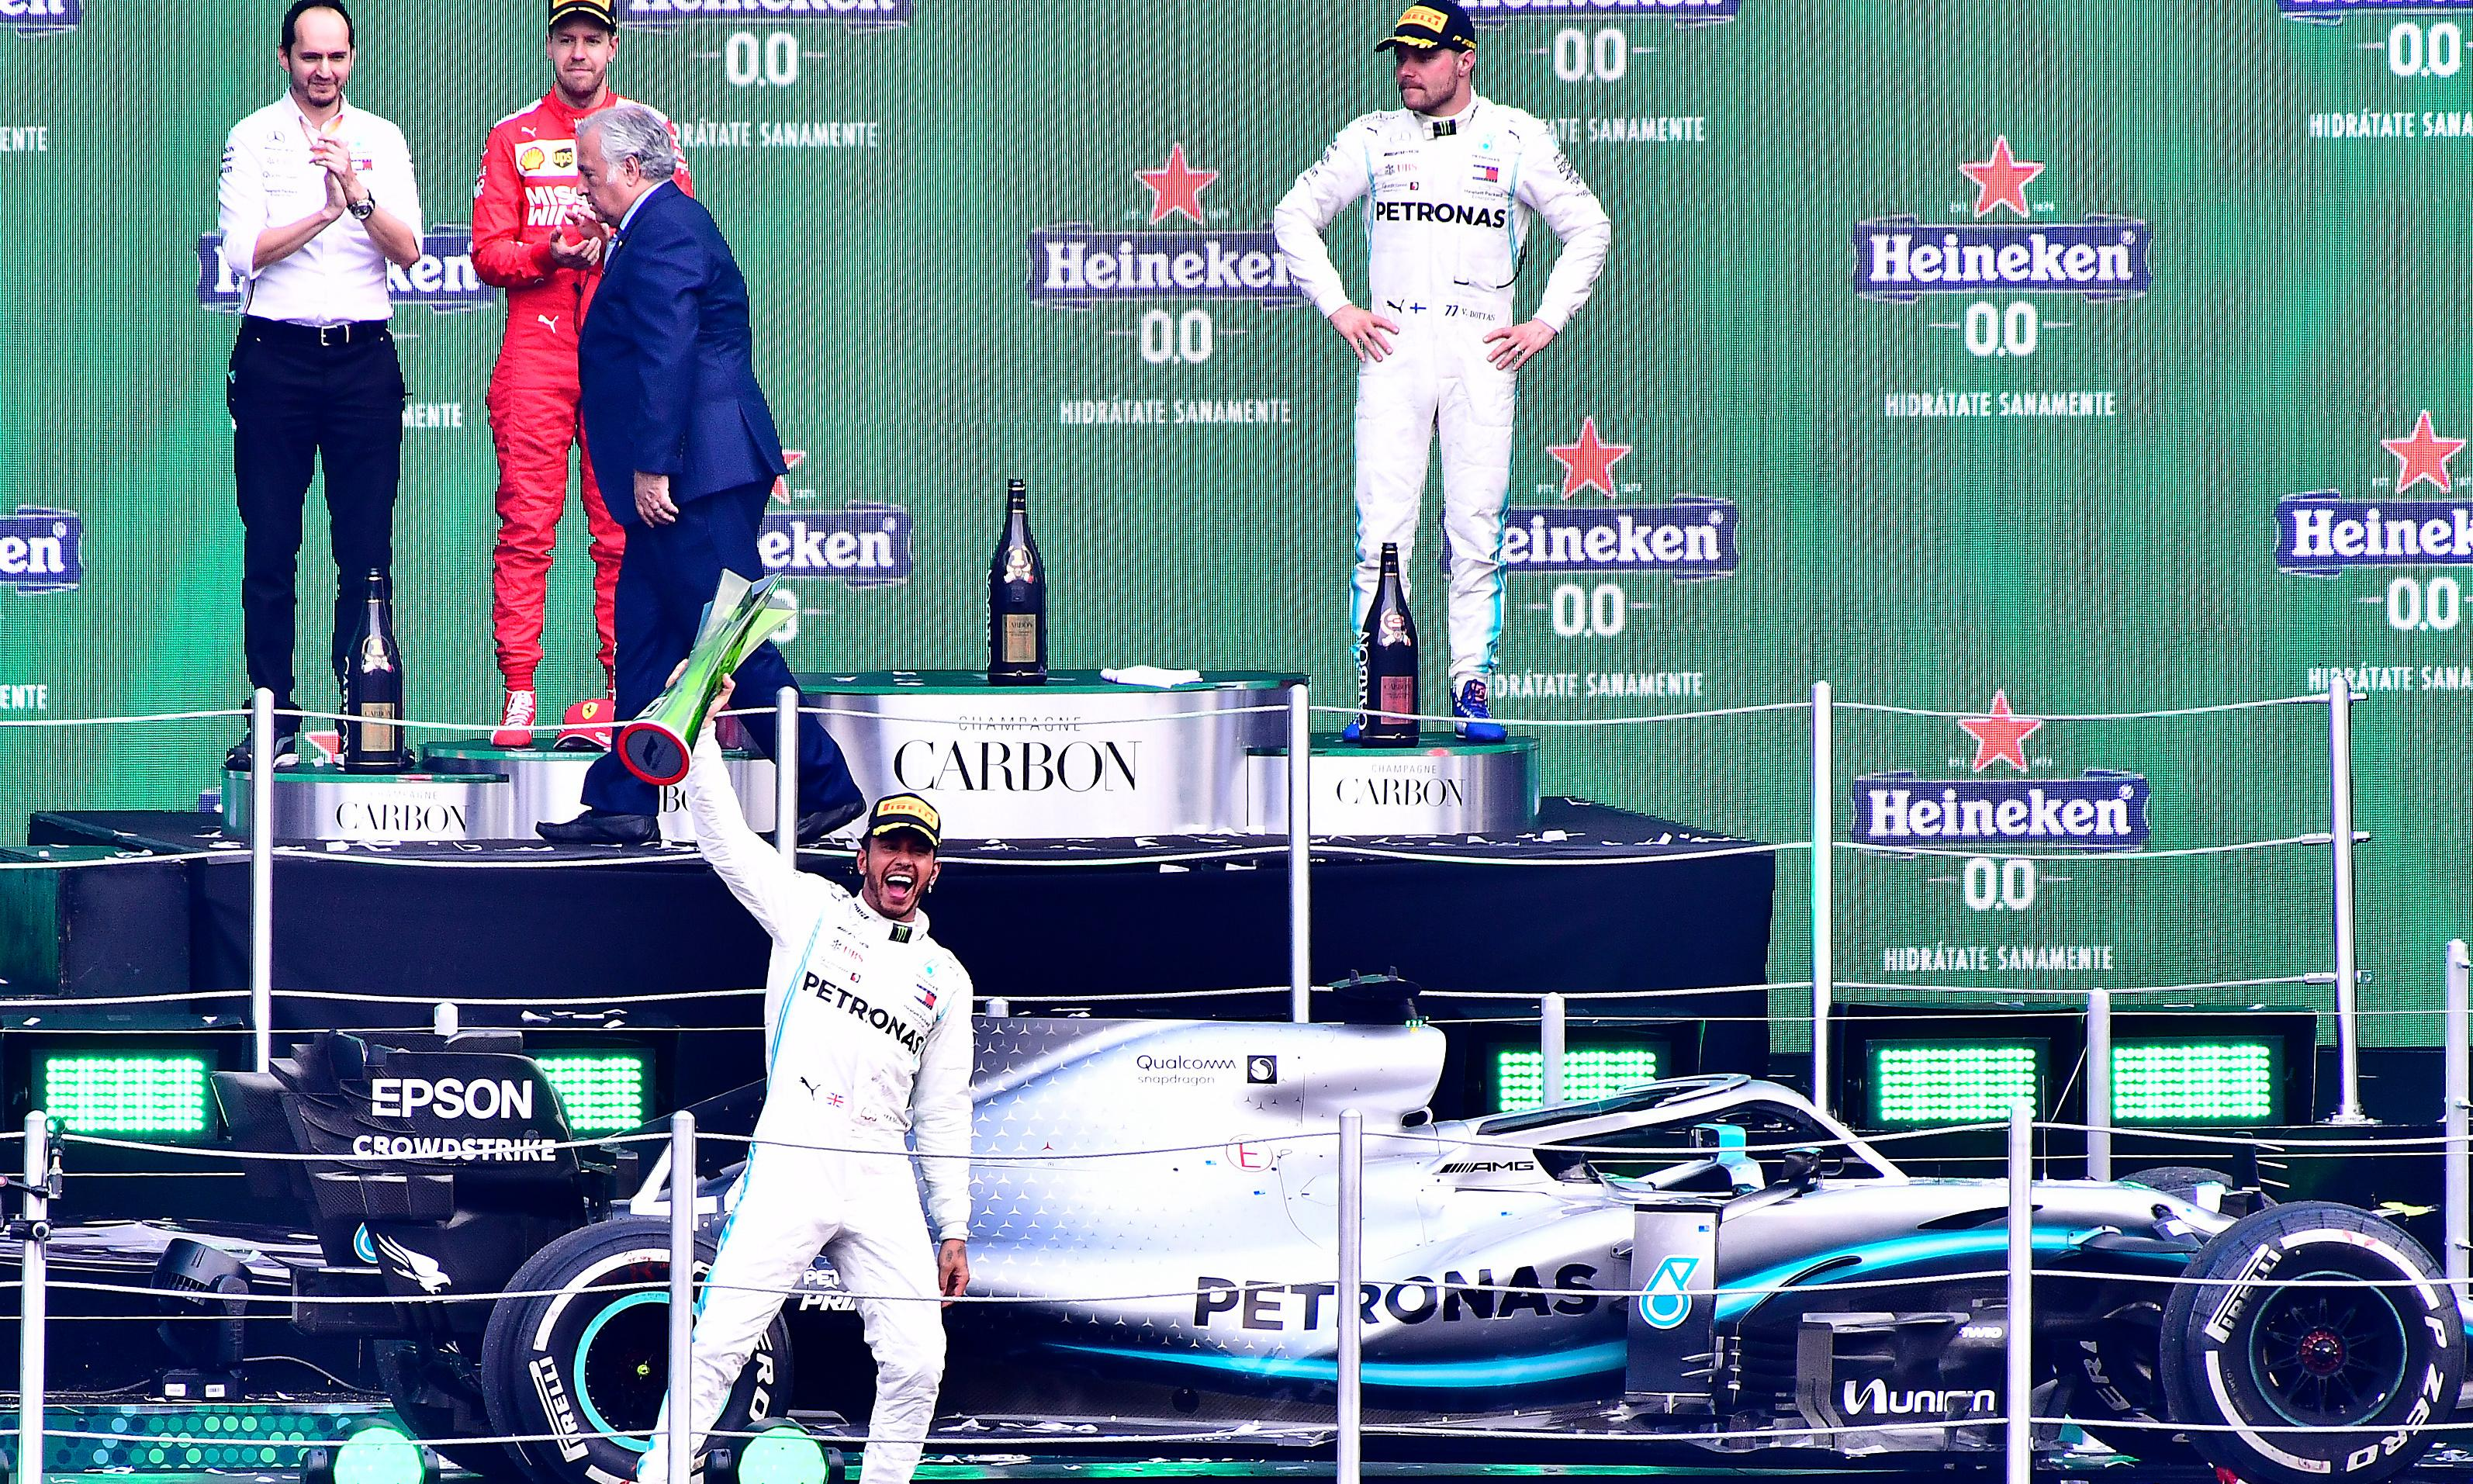 Lewis Hamilton says he will keep giving Max Verstappen plenty of space